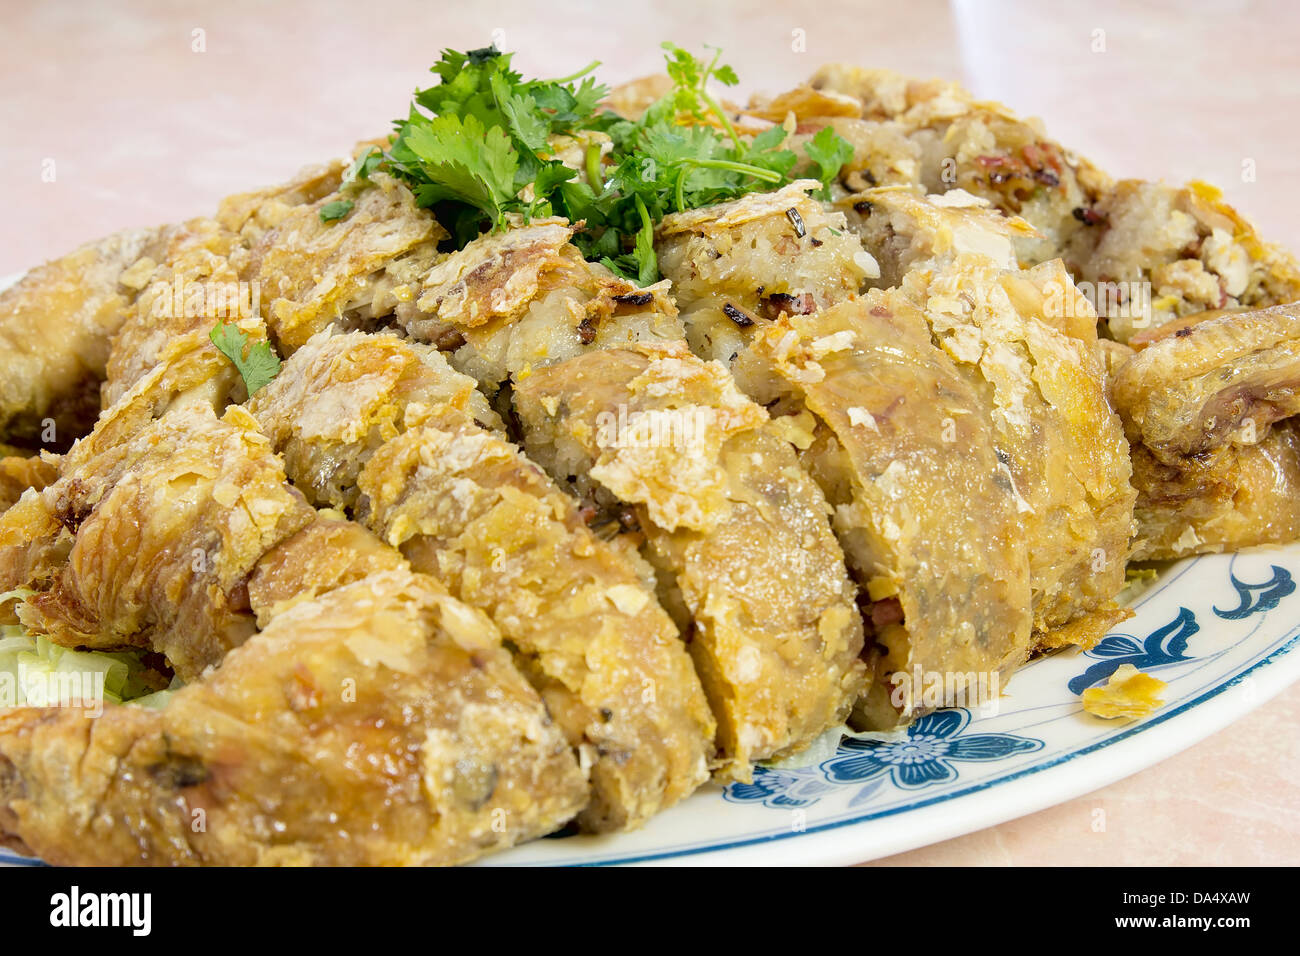 Glutinous Rice Deep Fried Stuffed Whole Chicken Chinese Dish Garnished with Cilantro Closeup - Stock Image